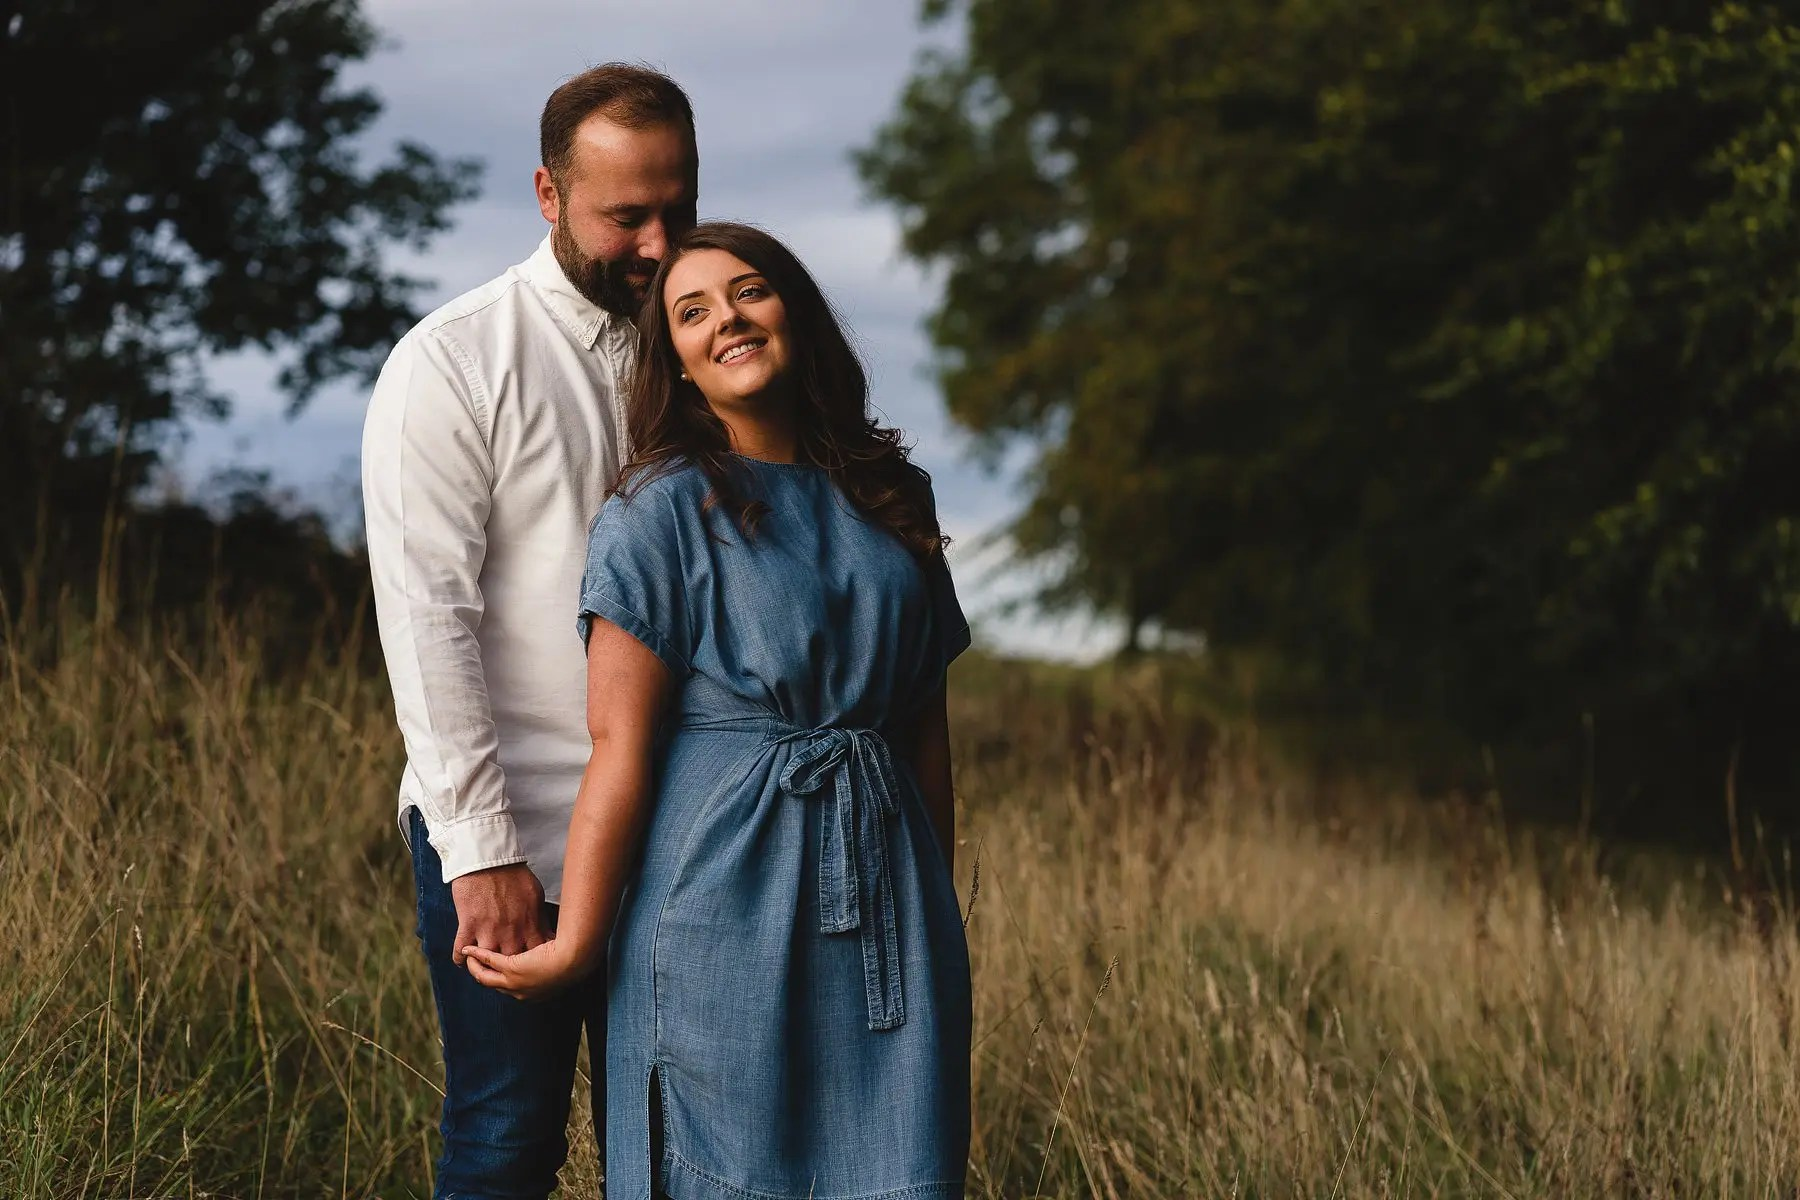 wedding photographers somerset 2019